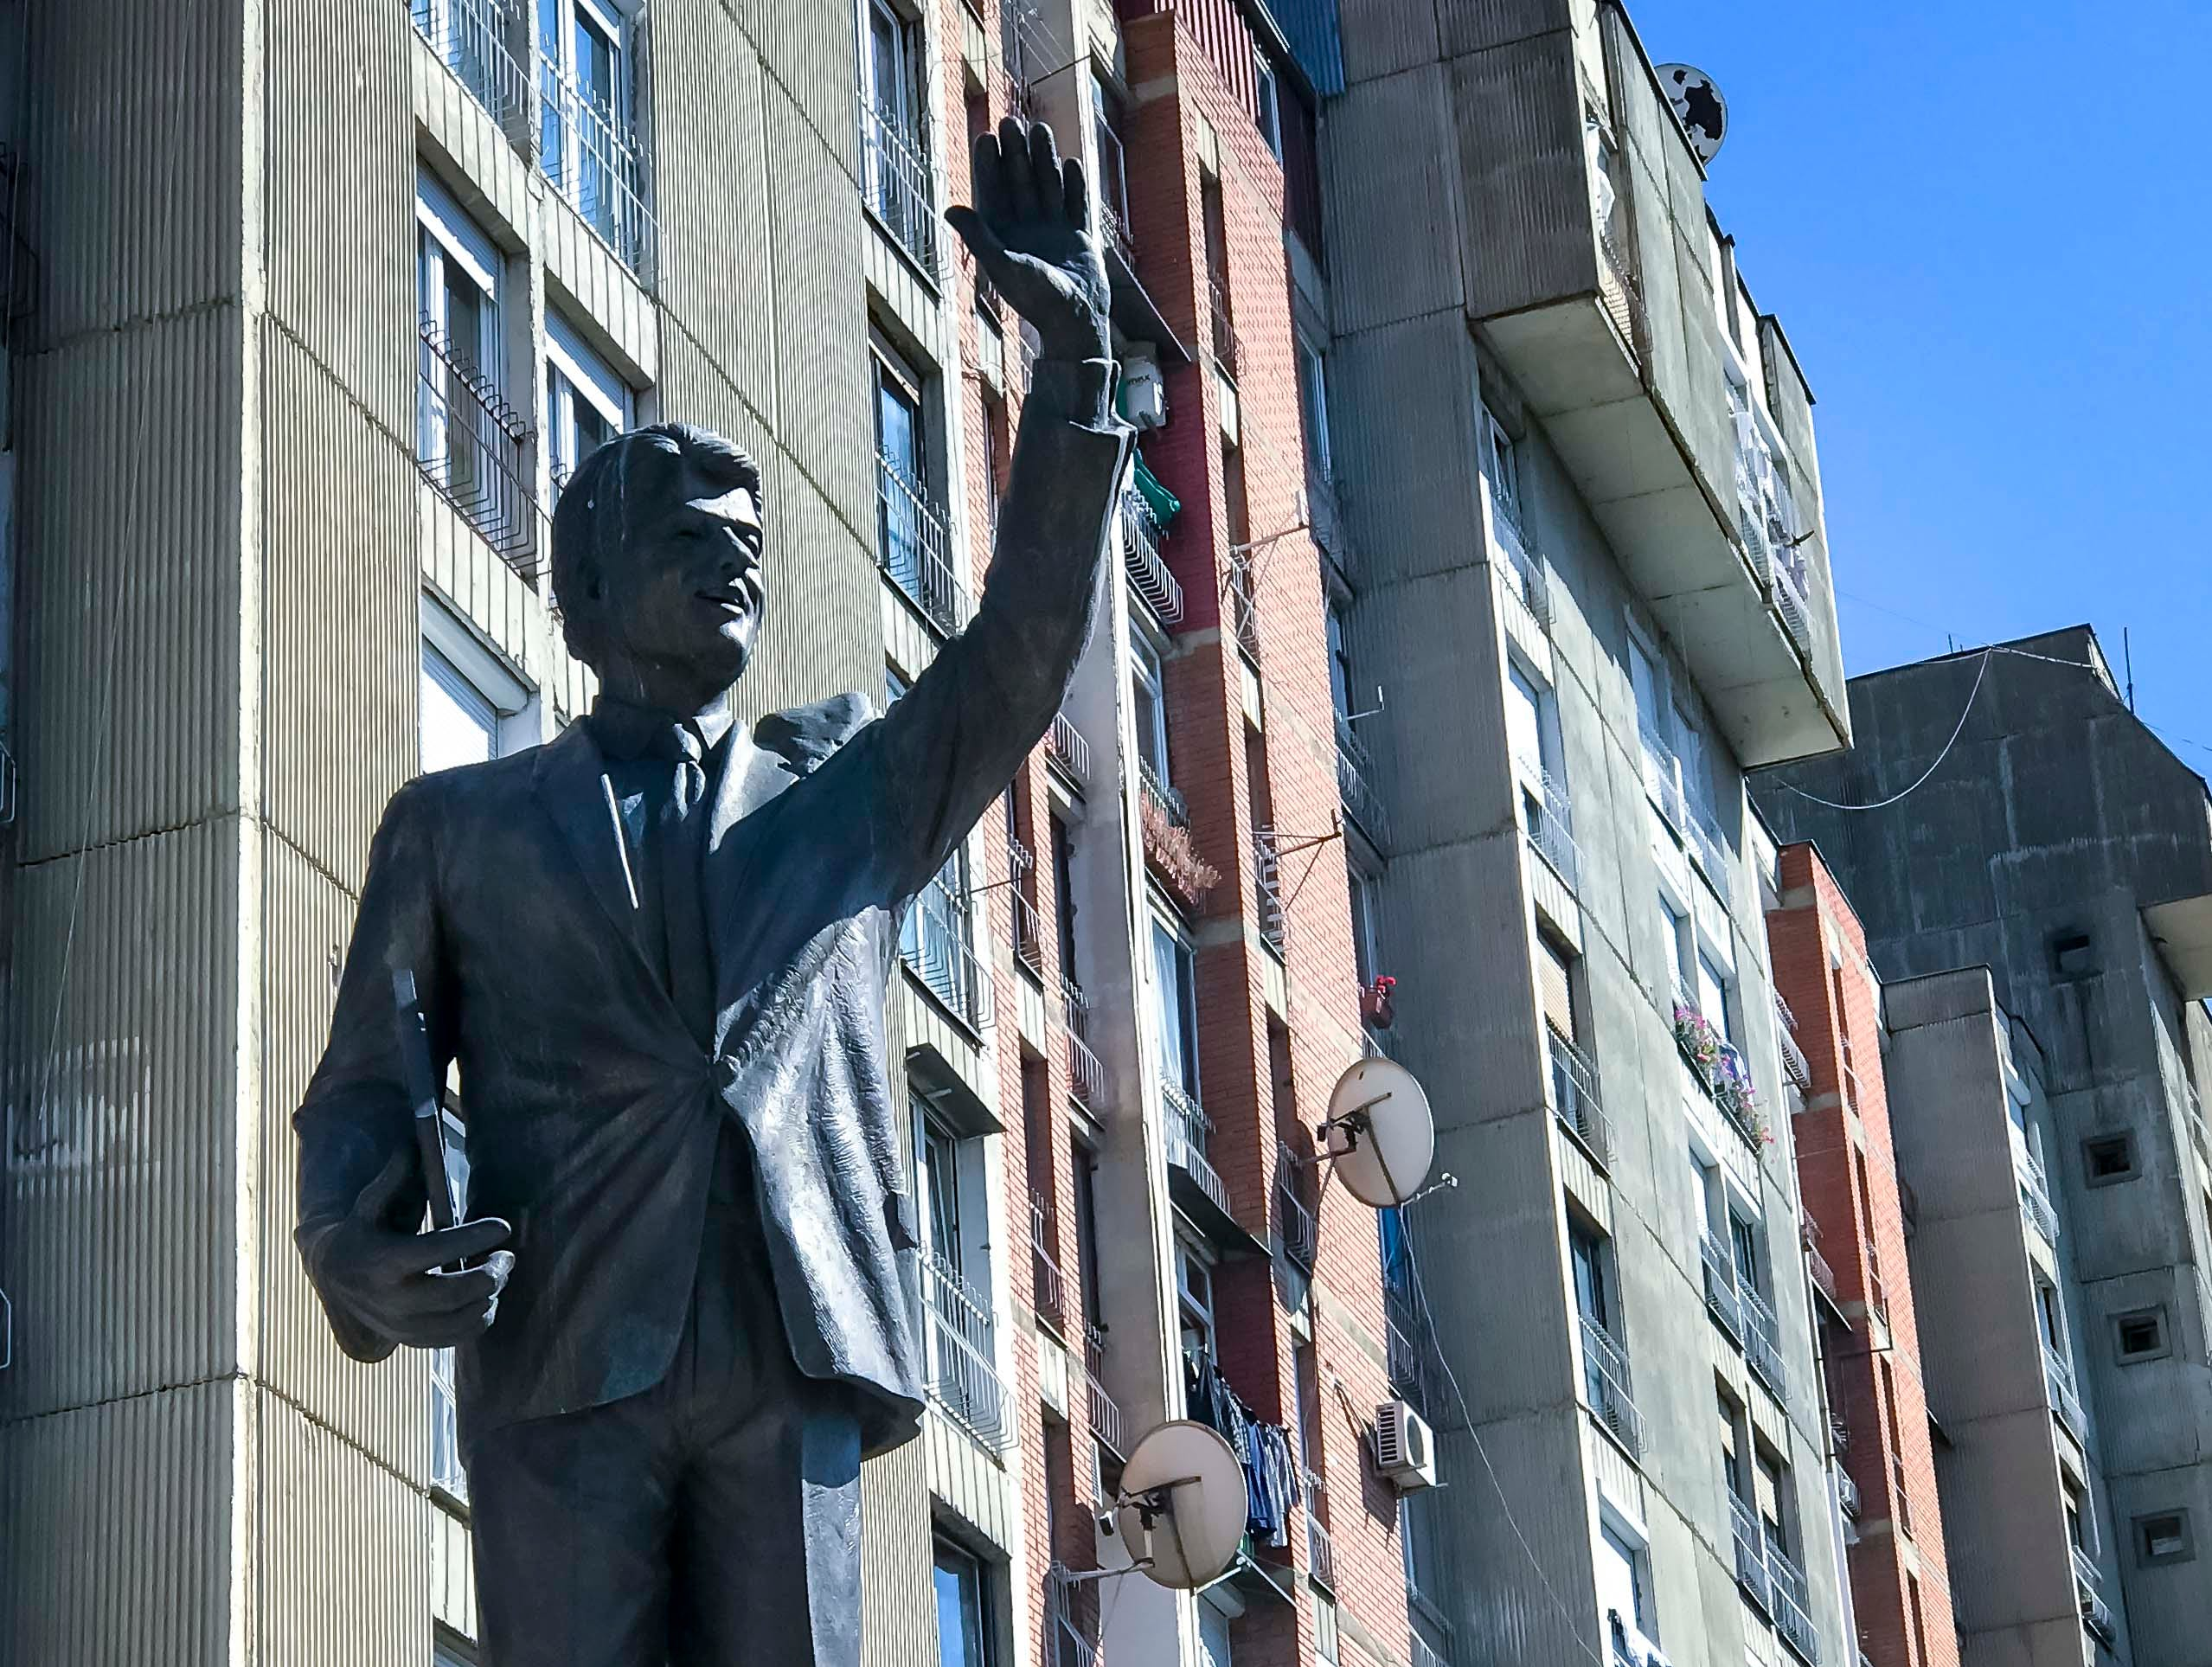 A statue to President Bill Clinton was erected in 2009 along Bill Clinton Boulevard in Pristina, Kosovo, Tuesday, Sept. 18, 2018. President Clinton called for NATO military involvement in Kosovo in 1999 and many streets and roads bear United States' presidents' names.